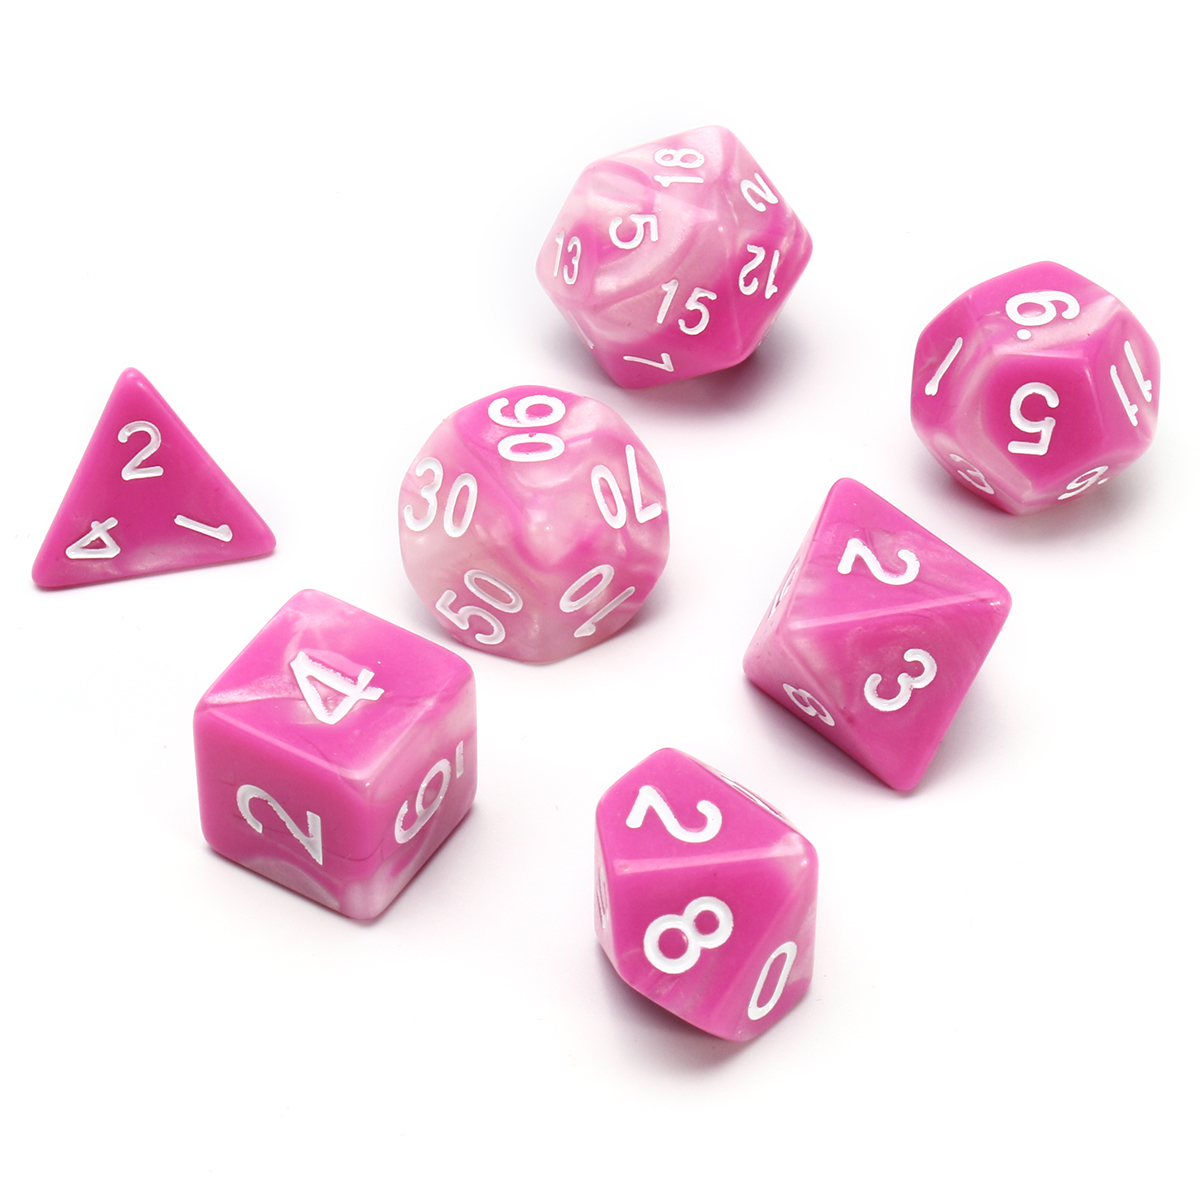 7Pcs Pink Gemini Acrylic Polyhedral Dice For Dungeons Dragons RPG RPG With Bag